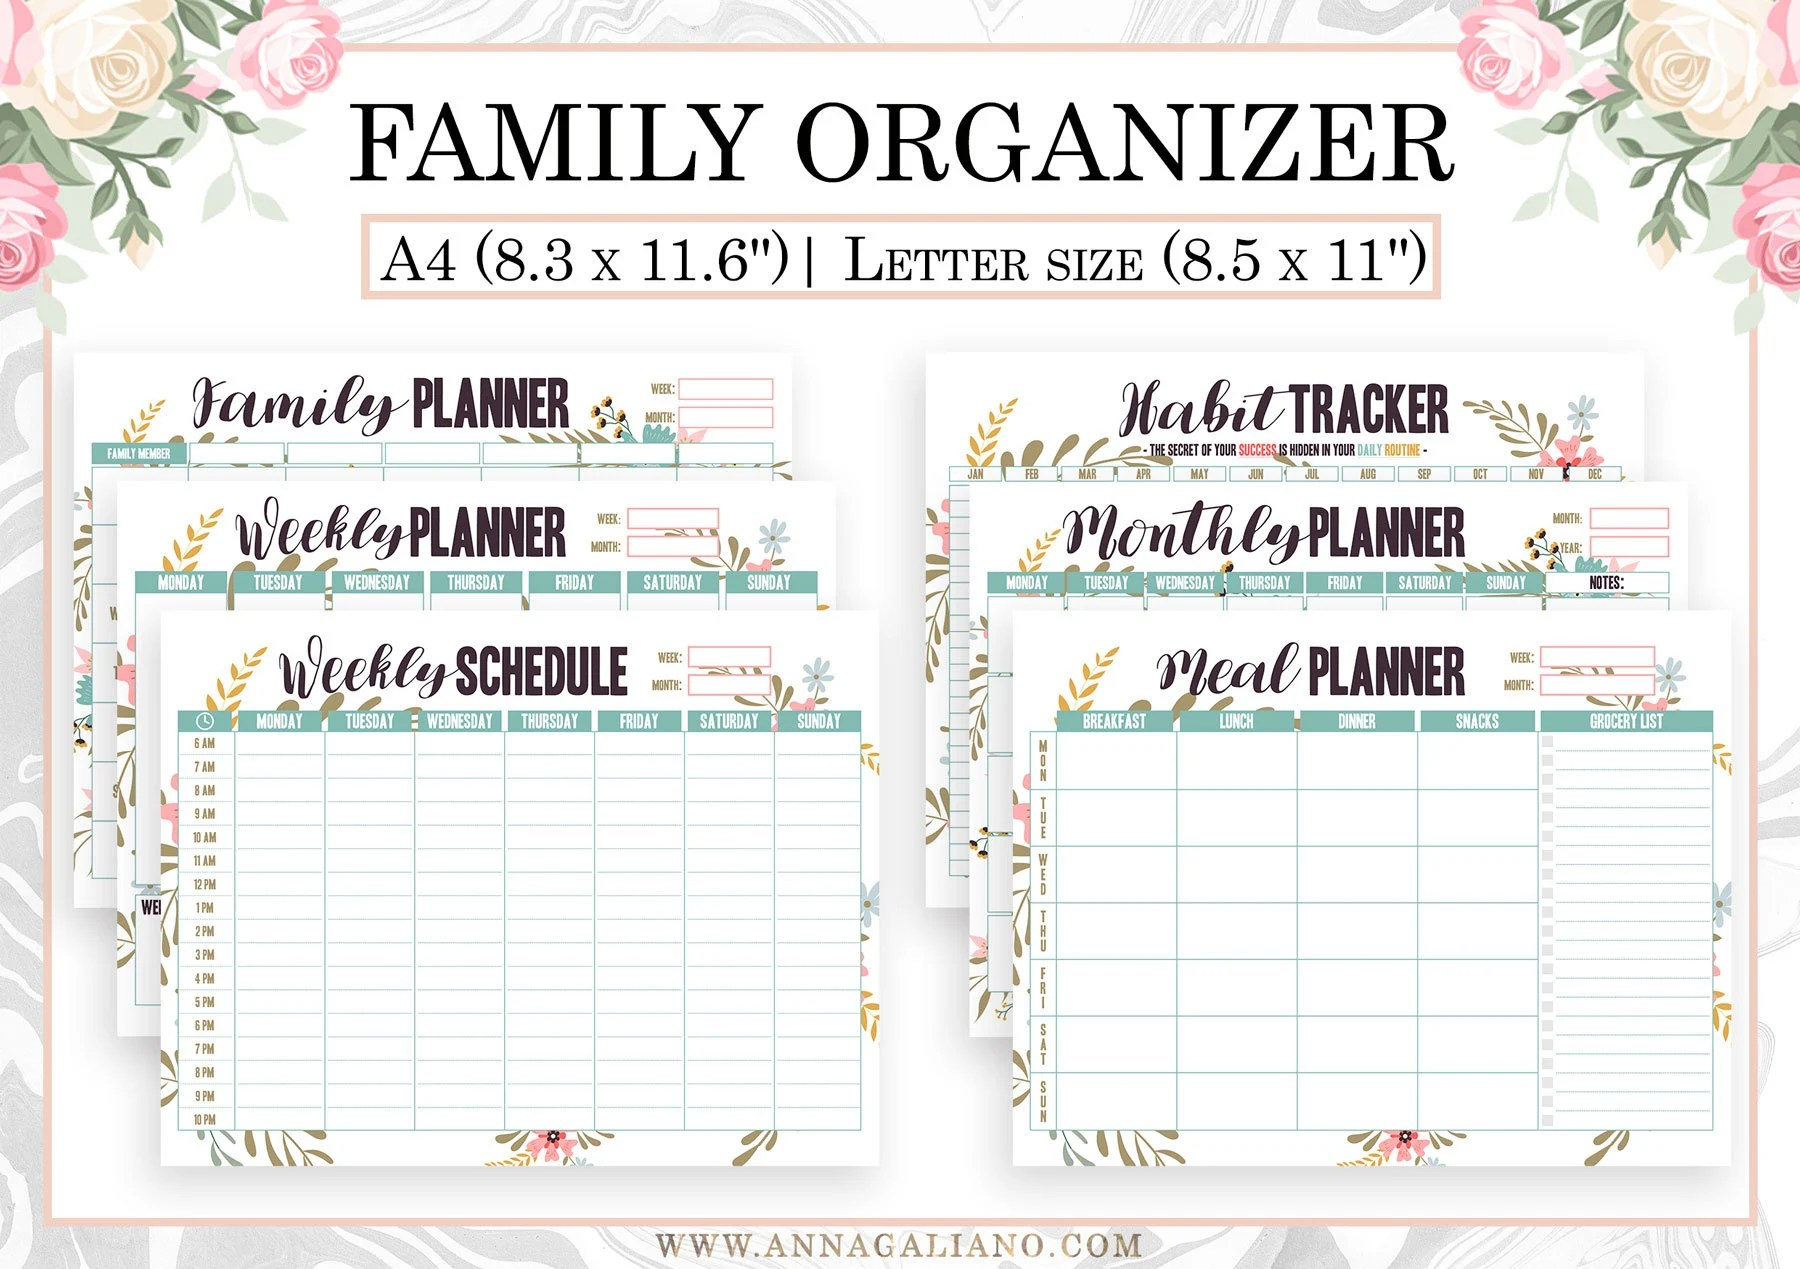 Family Organizer Printable Homeschool Hourly Planner Weekly Etsy